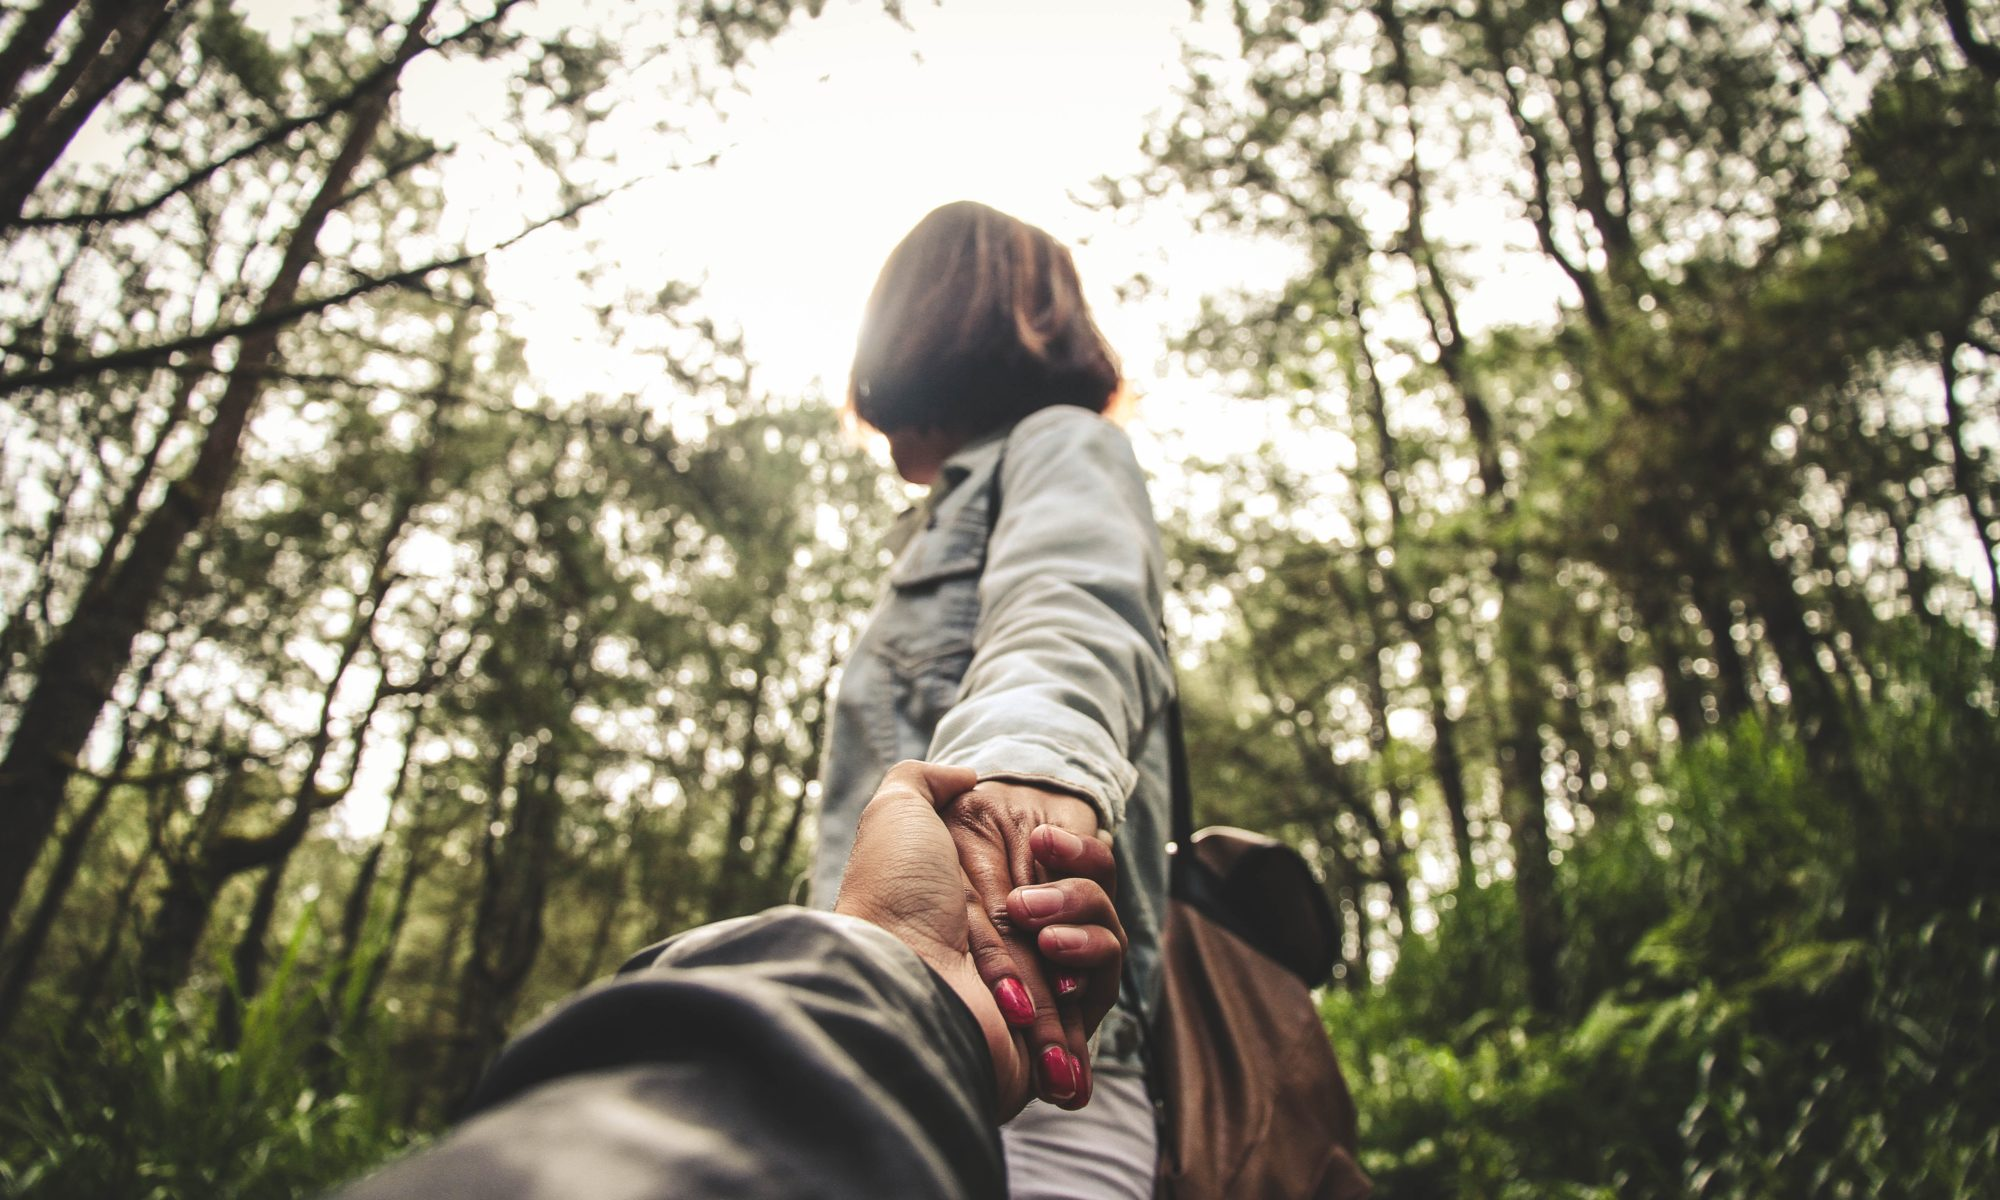 Counseling for Daughters of Narcissistic Mothers | Family counseling Doylestown and Huntingdon Valley PA | Couples counseling, individual counseling services